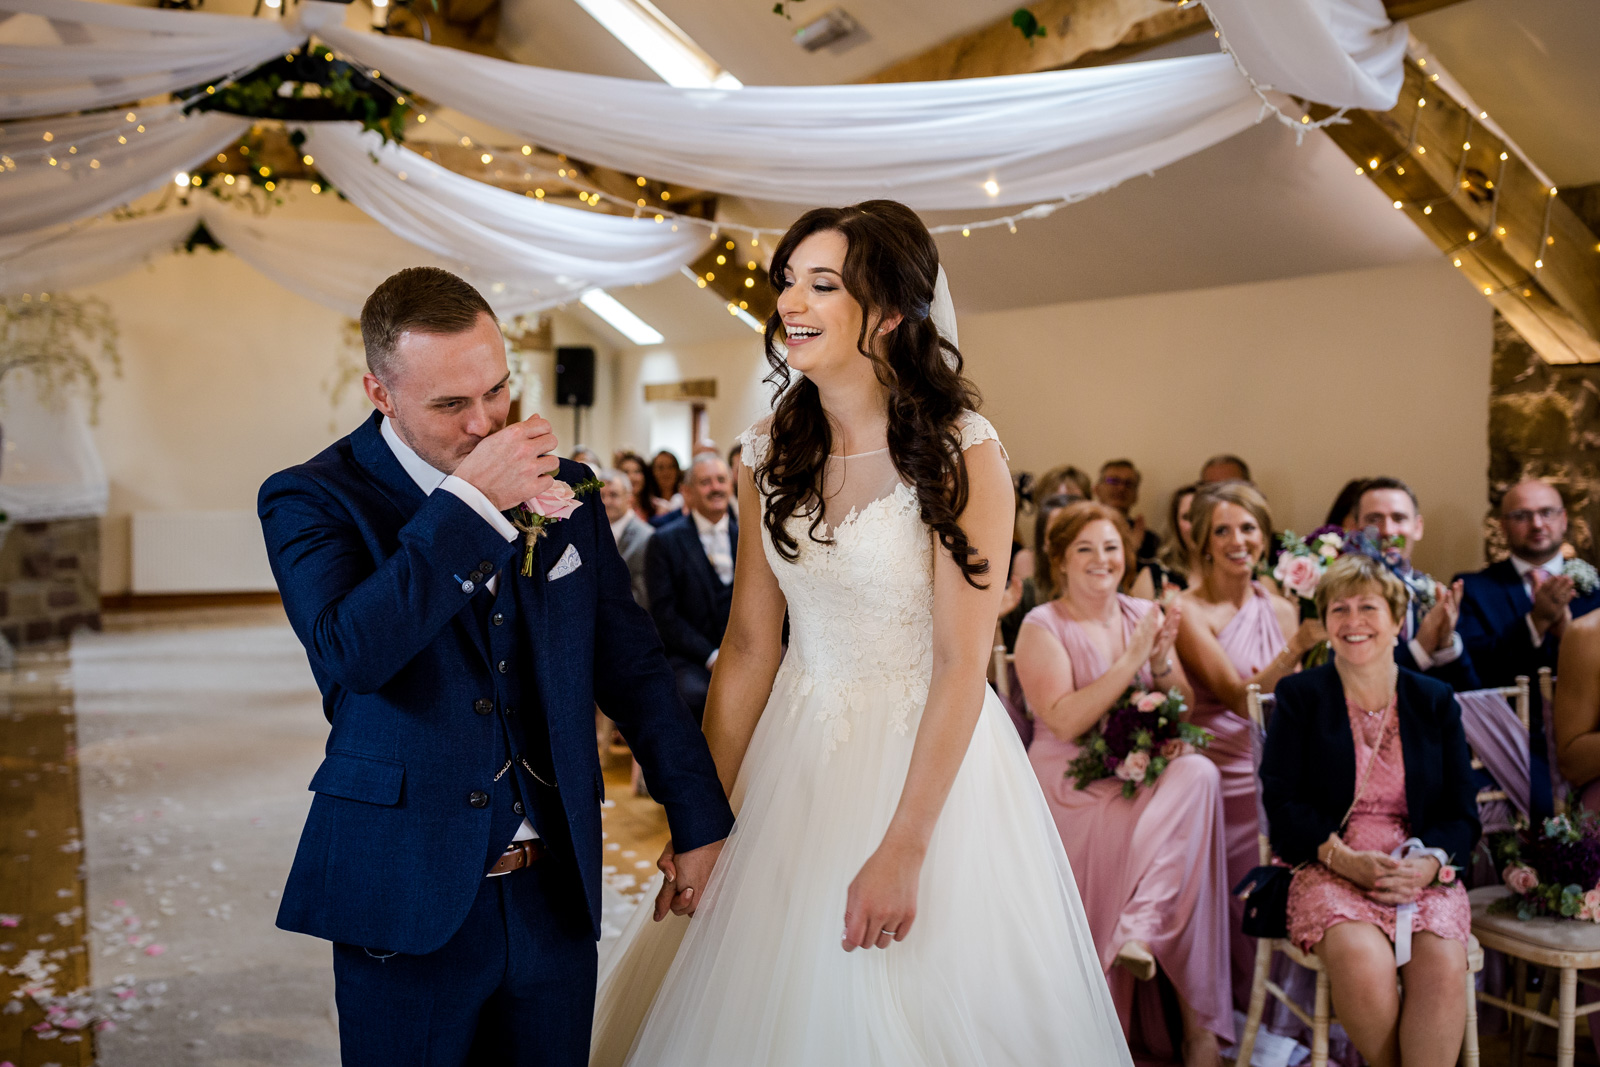 Just married at a Beeston Manor Wedding